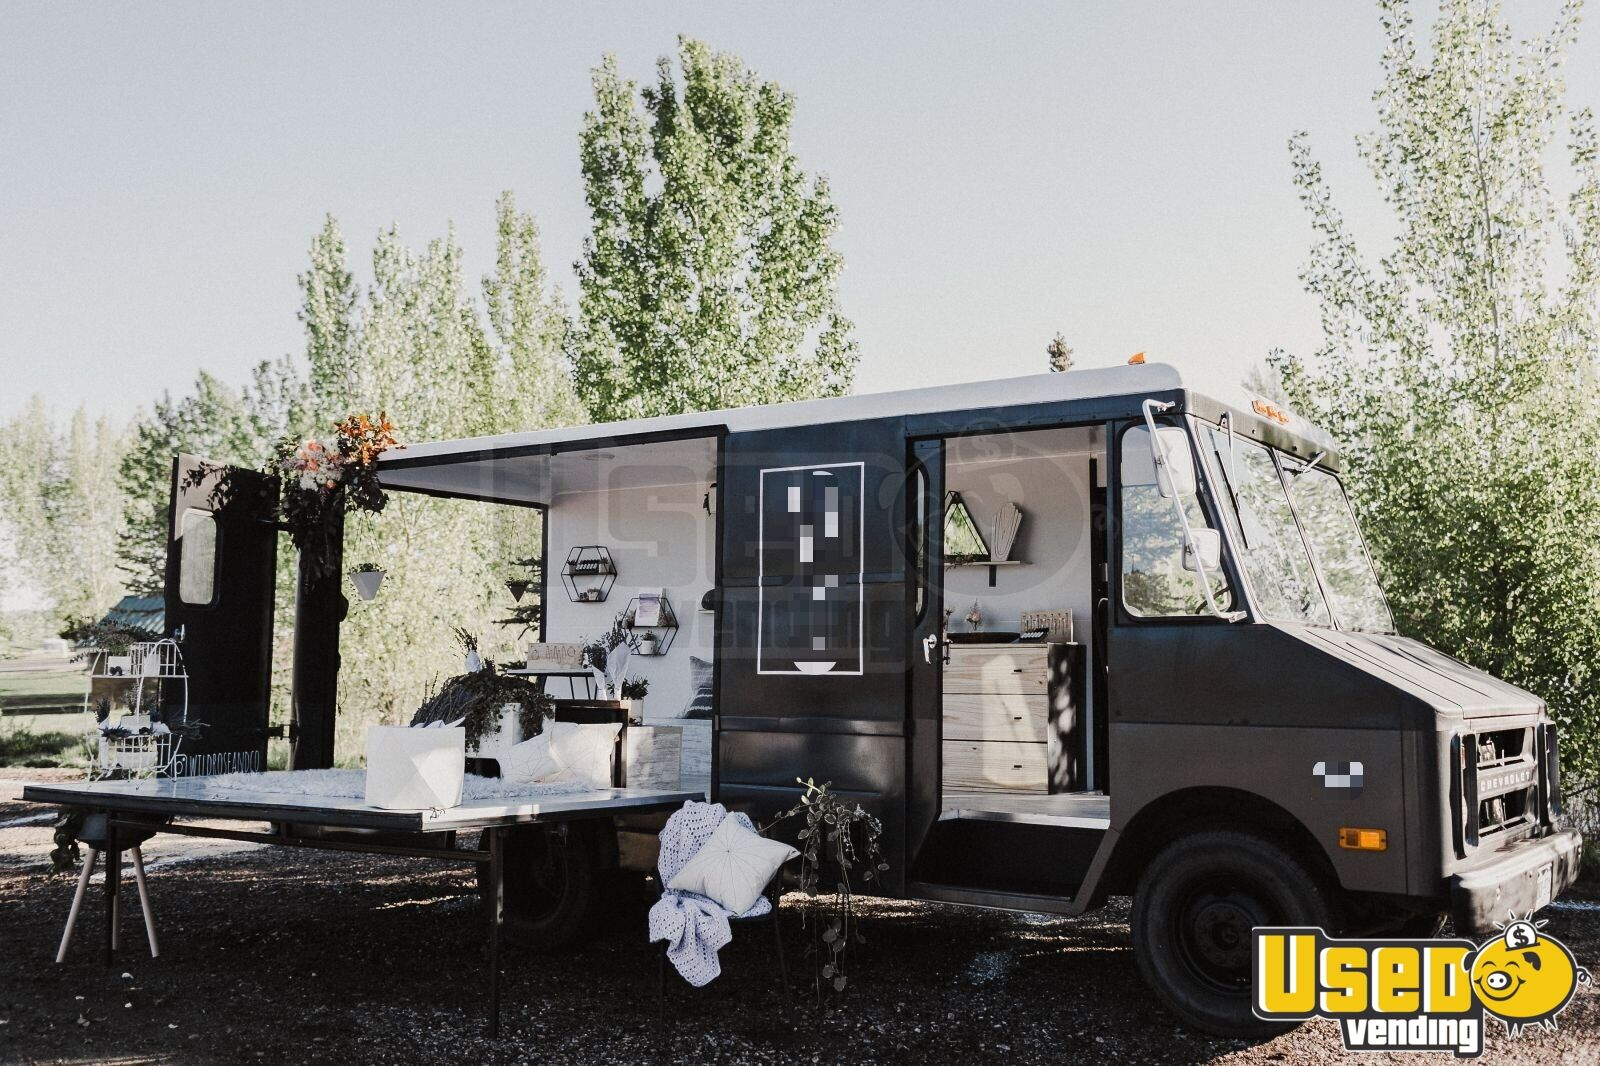 1979 Grumann, Step Van Other Mobile Business Interior Lighting Colorado Gas Engine for Sale - 5